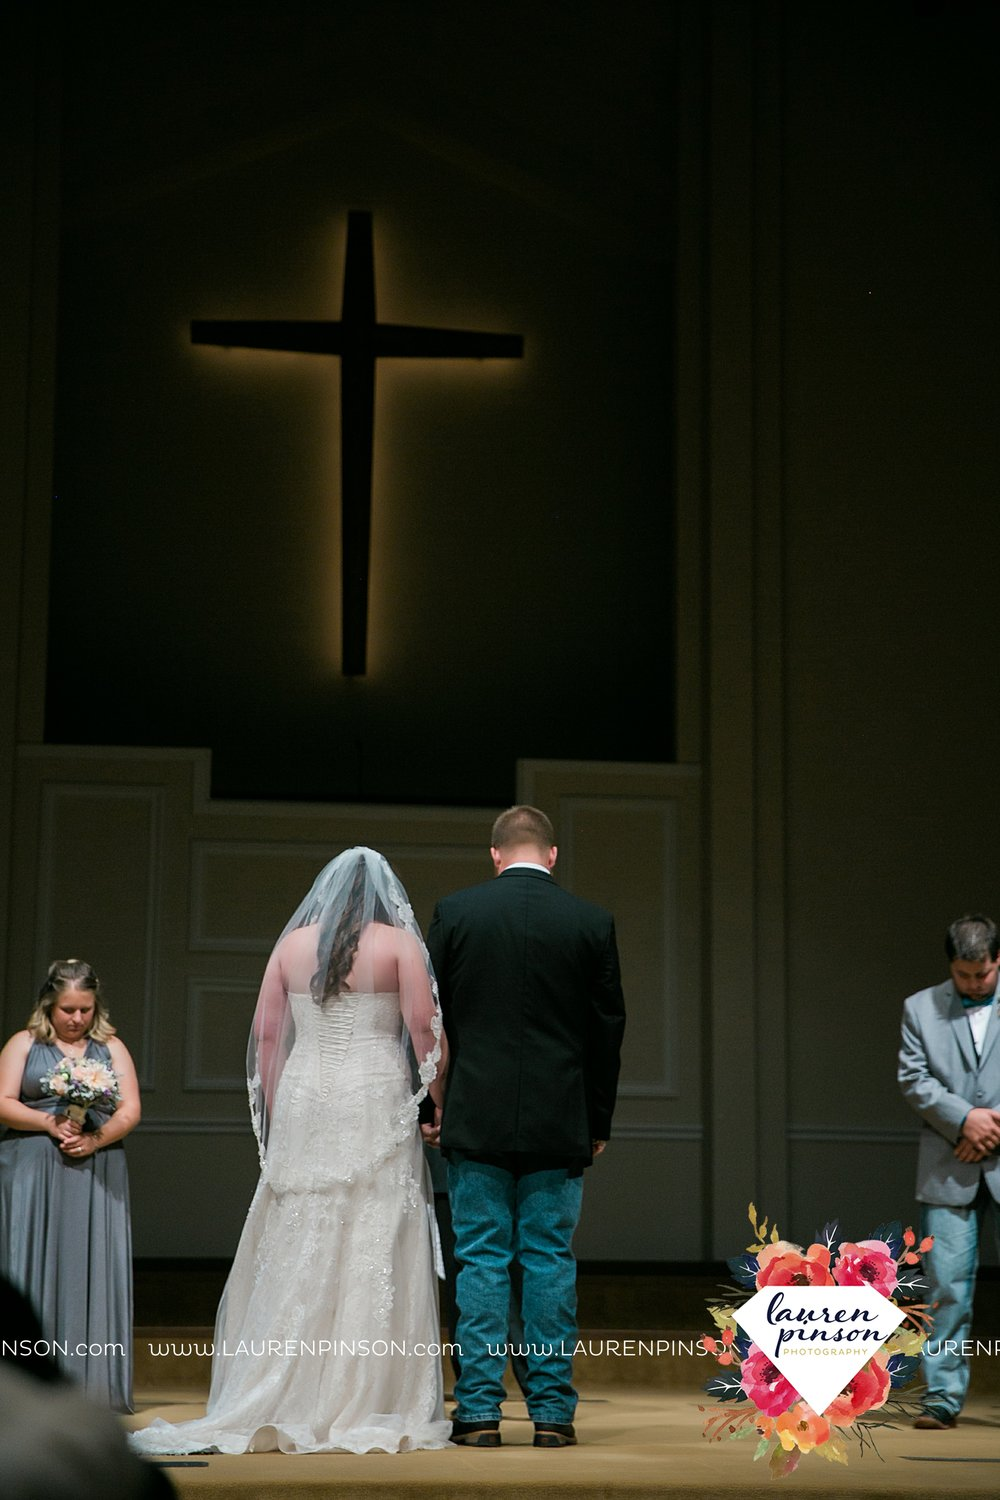 walters-oklahoma-wedding-wichita-falls-photographer_3312.jpg